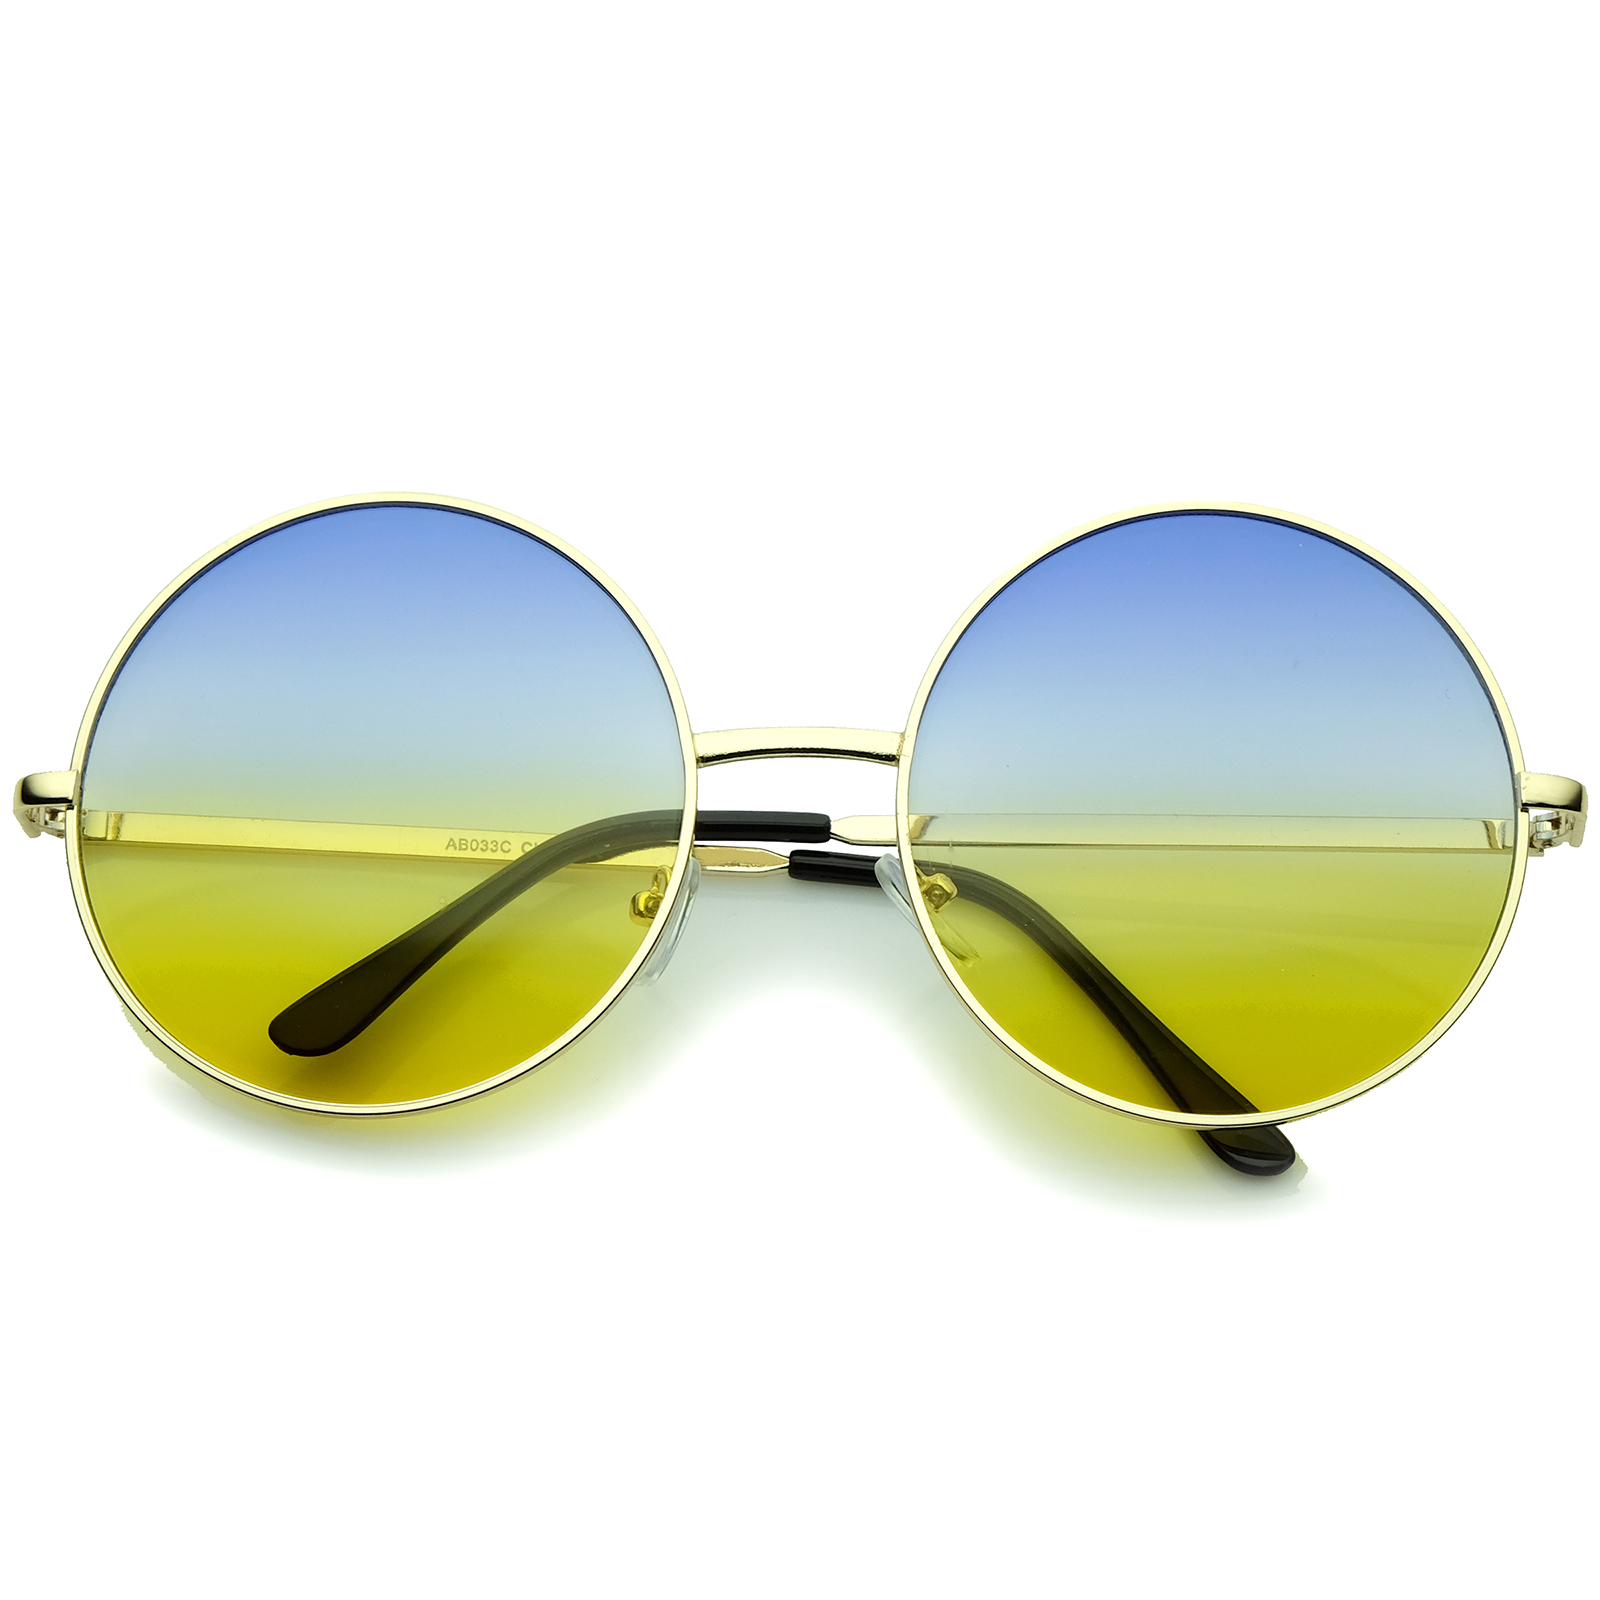 sunglassLA-Super-Oversize-Slim-Temple-Colorful-Gradient-Lens-Round-Sunglasses